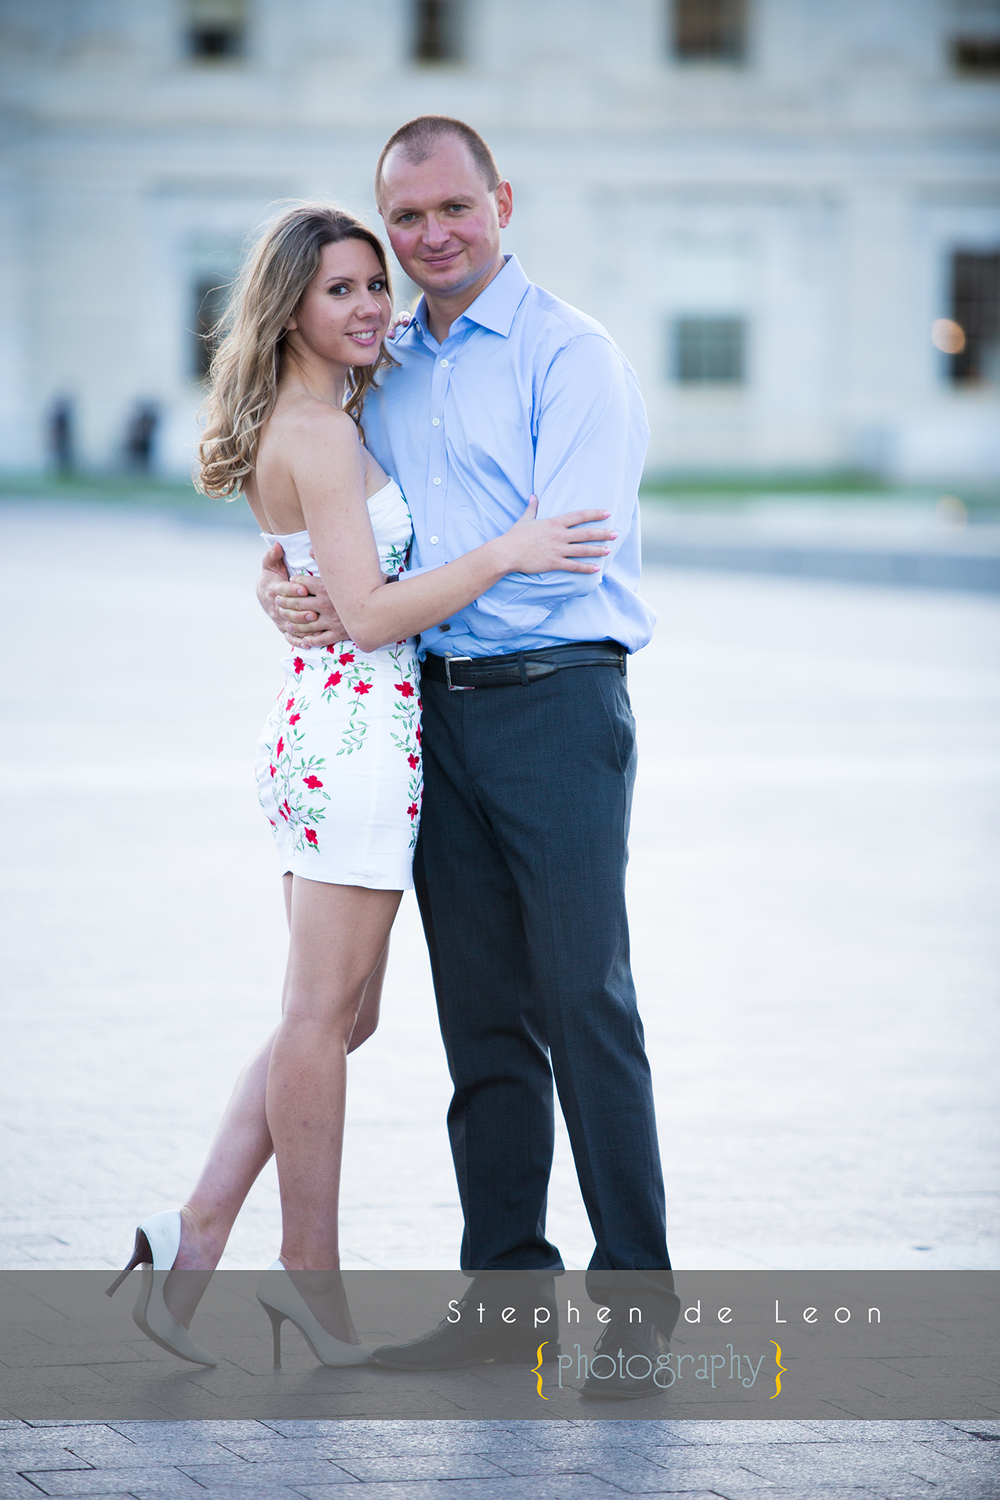 Stephen_de_Leon_Capitol_Engagement_Photography14.jpg